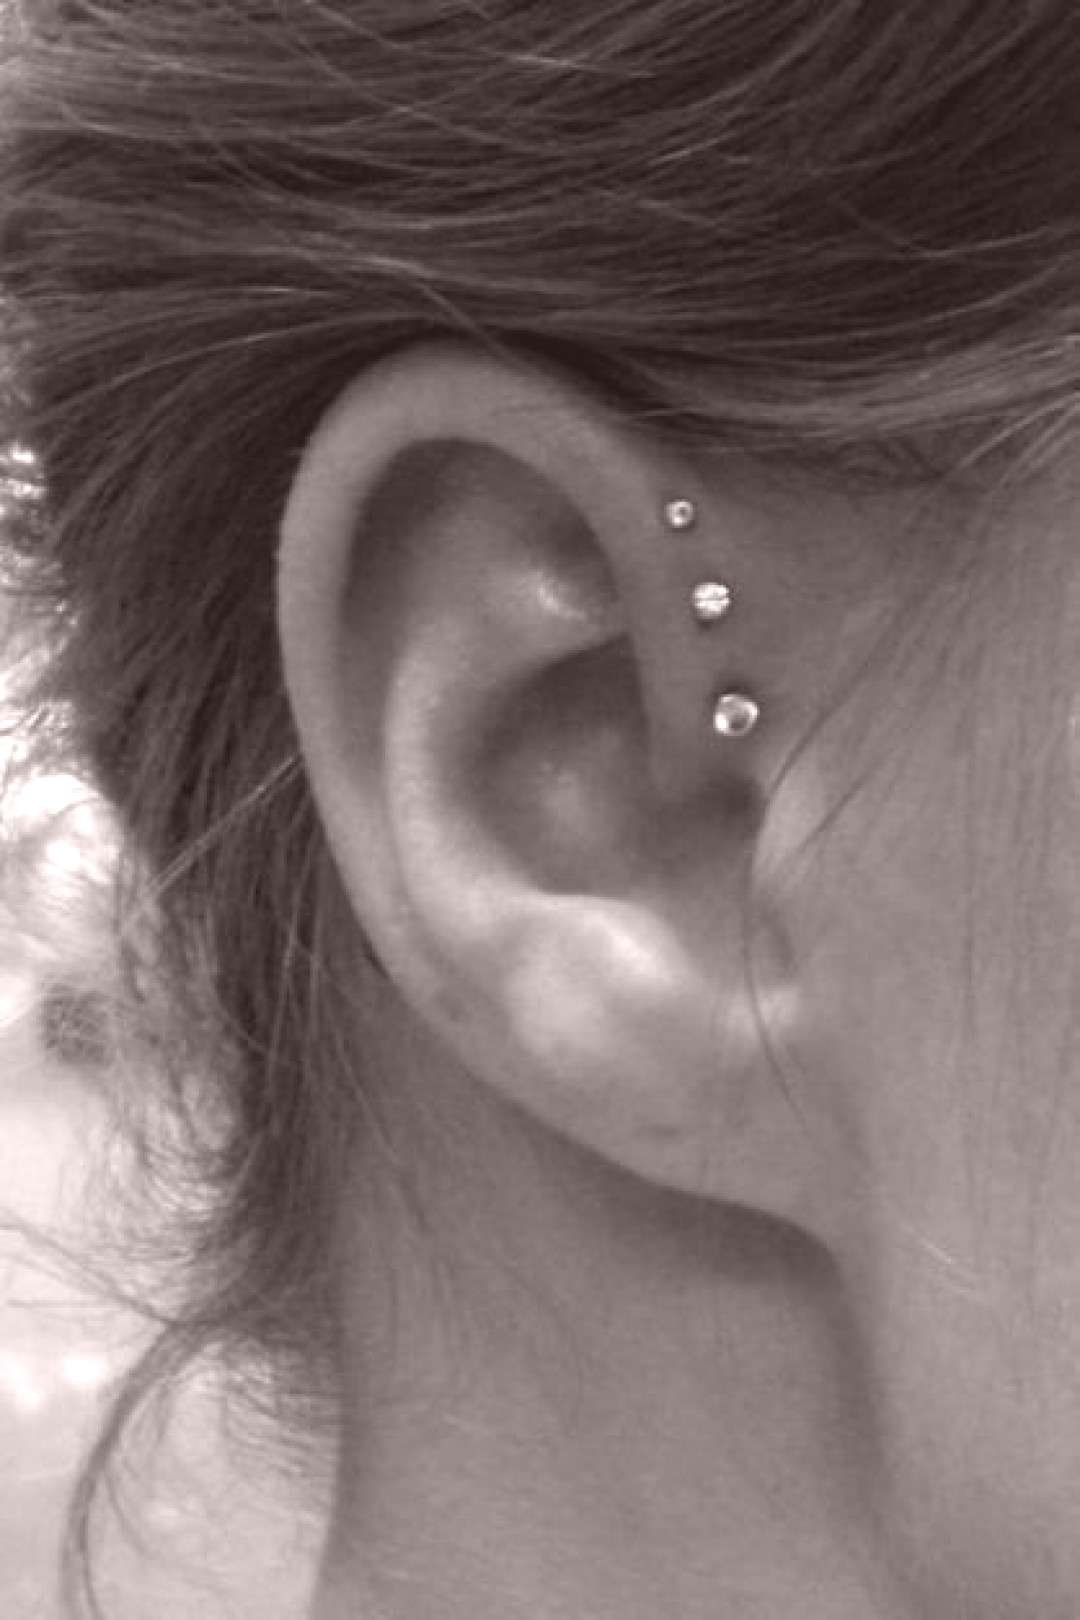 10 Unique Piercings That Are Actually Cute AF - Society19 - Check out this unique piercing we love